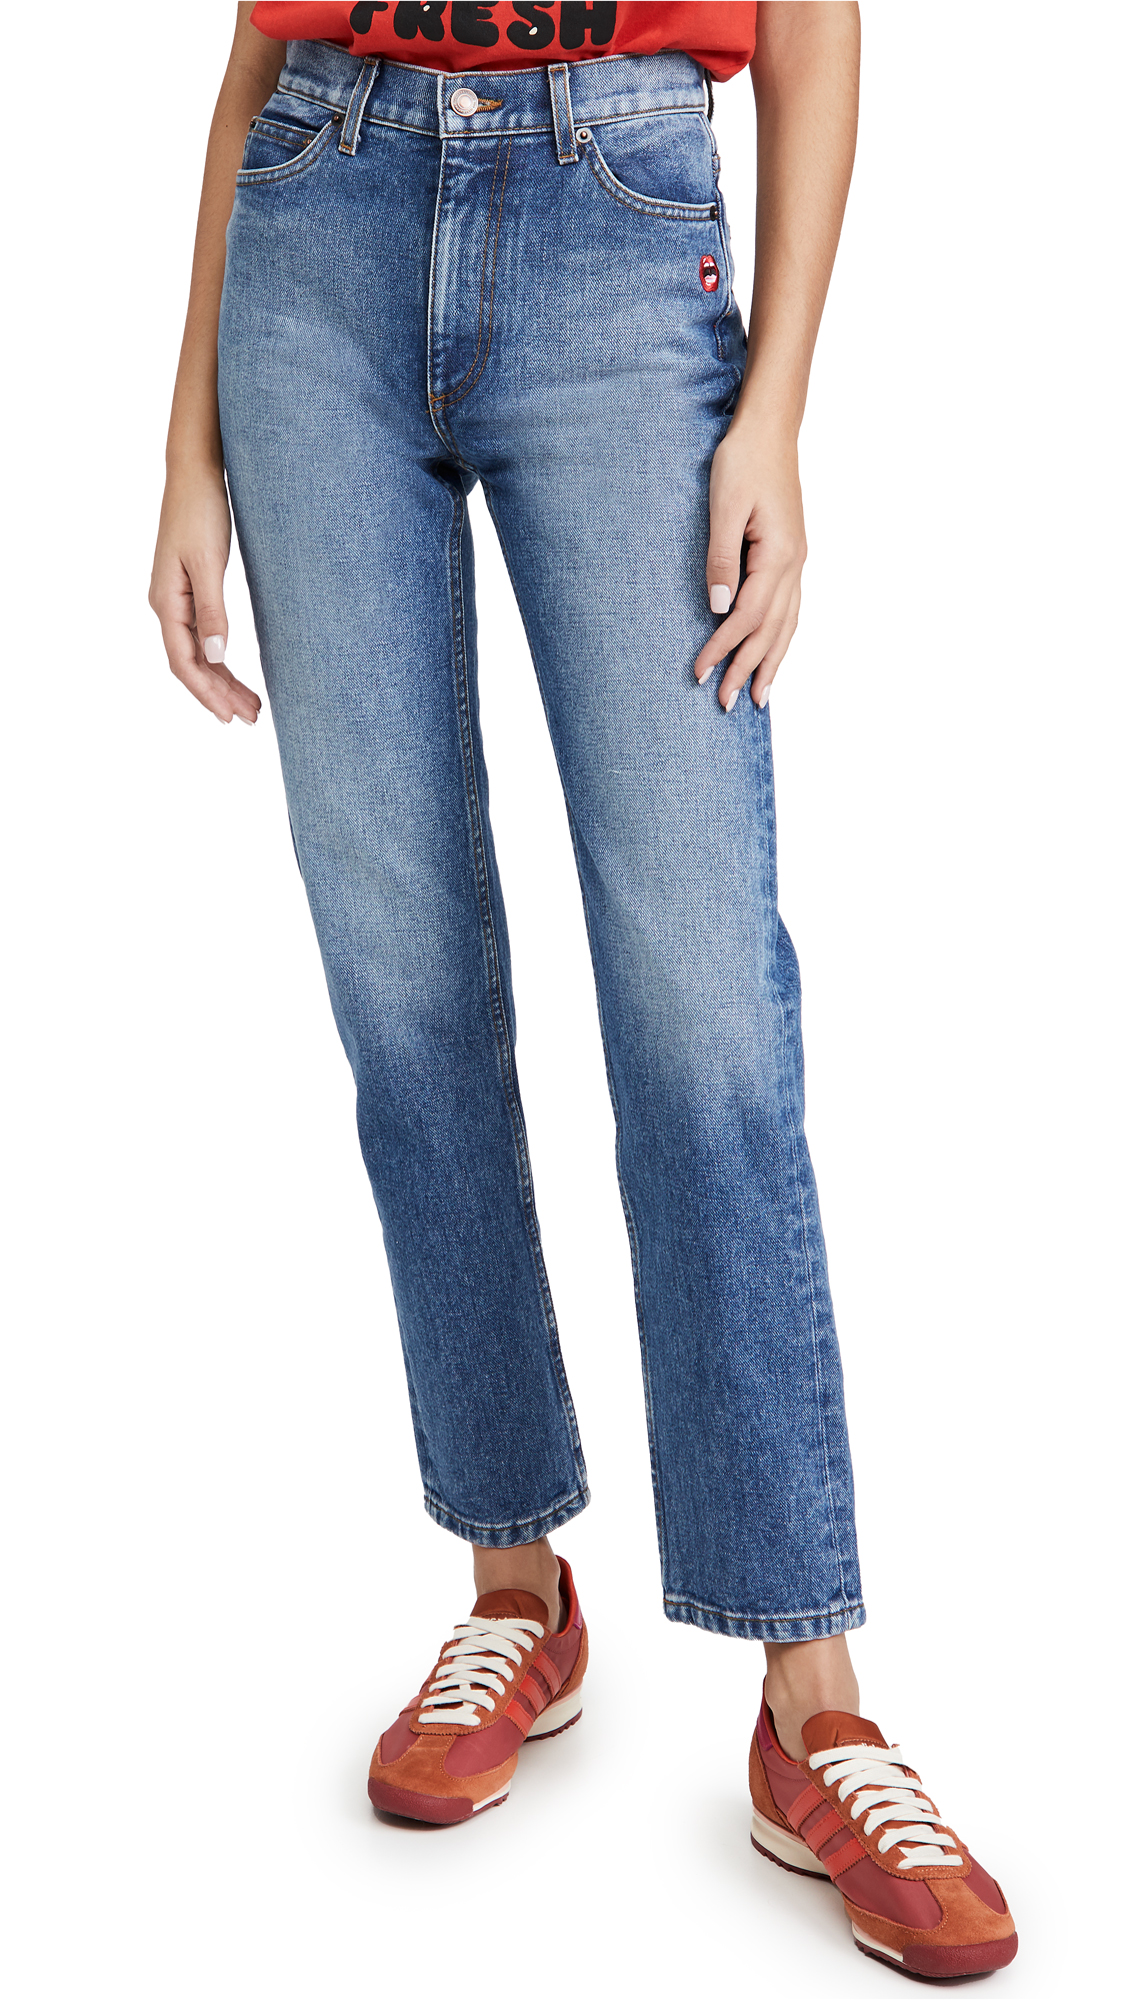 The Marc Jacobs The 5 Pocket Jeans